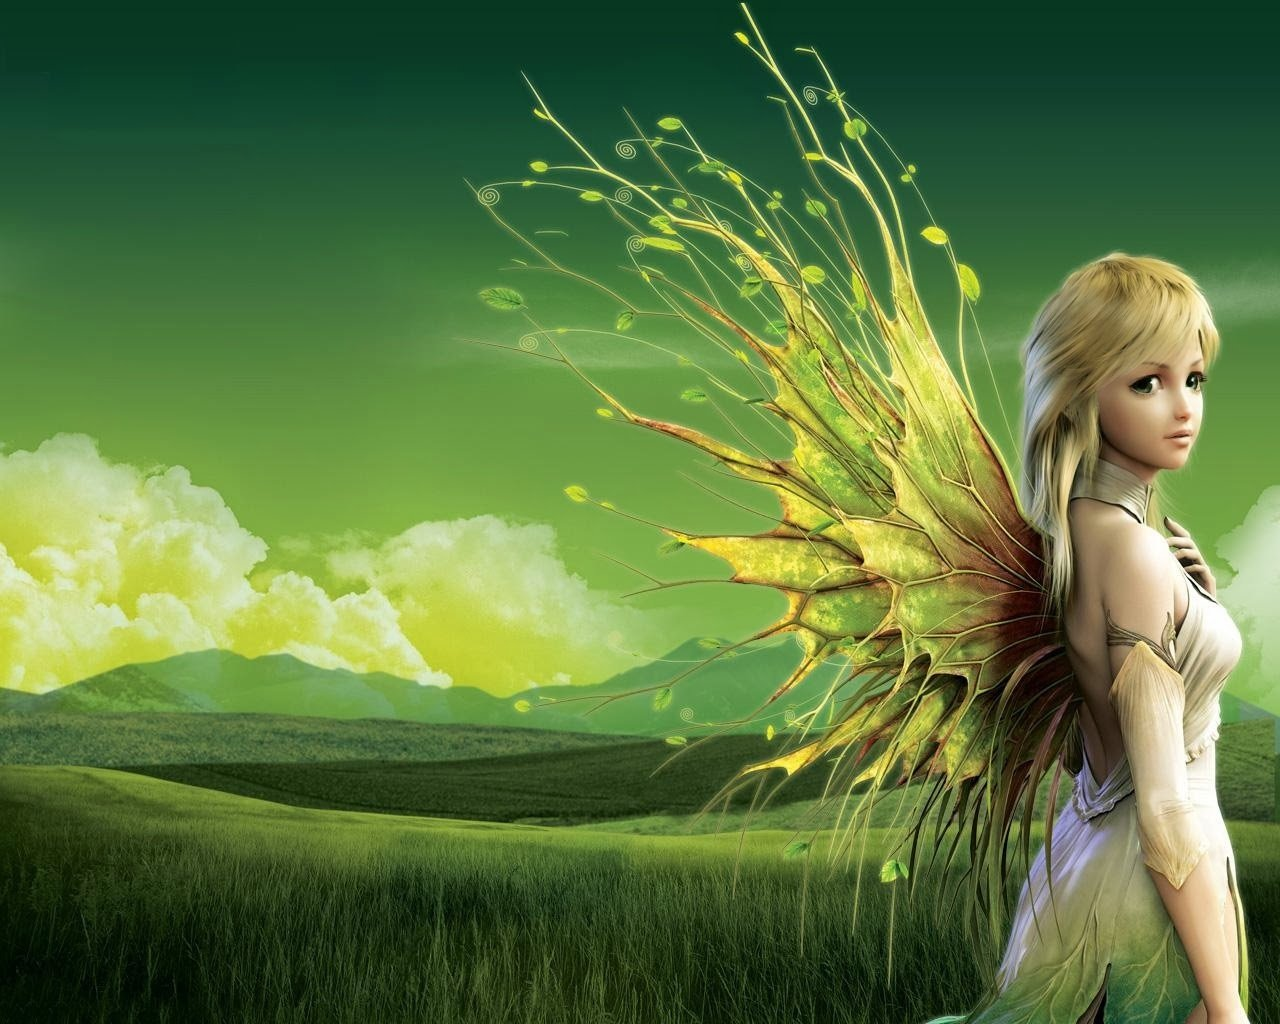 Stunning Hd Fantasy Wallpapers: Beautiful Fairies Wallpapers